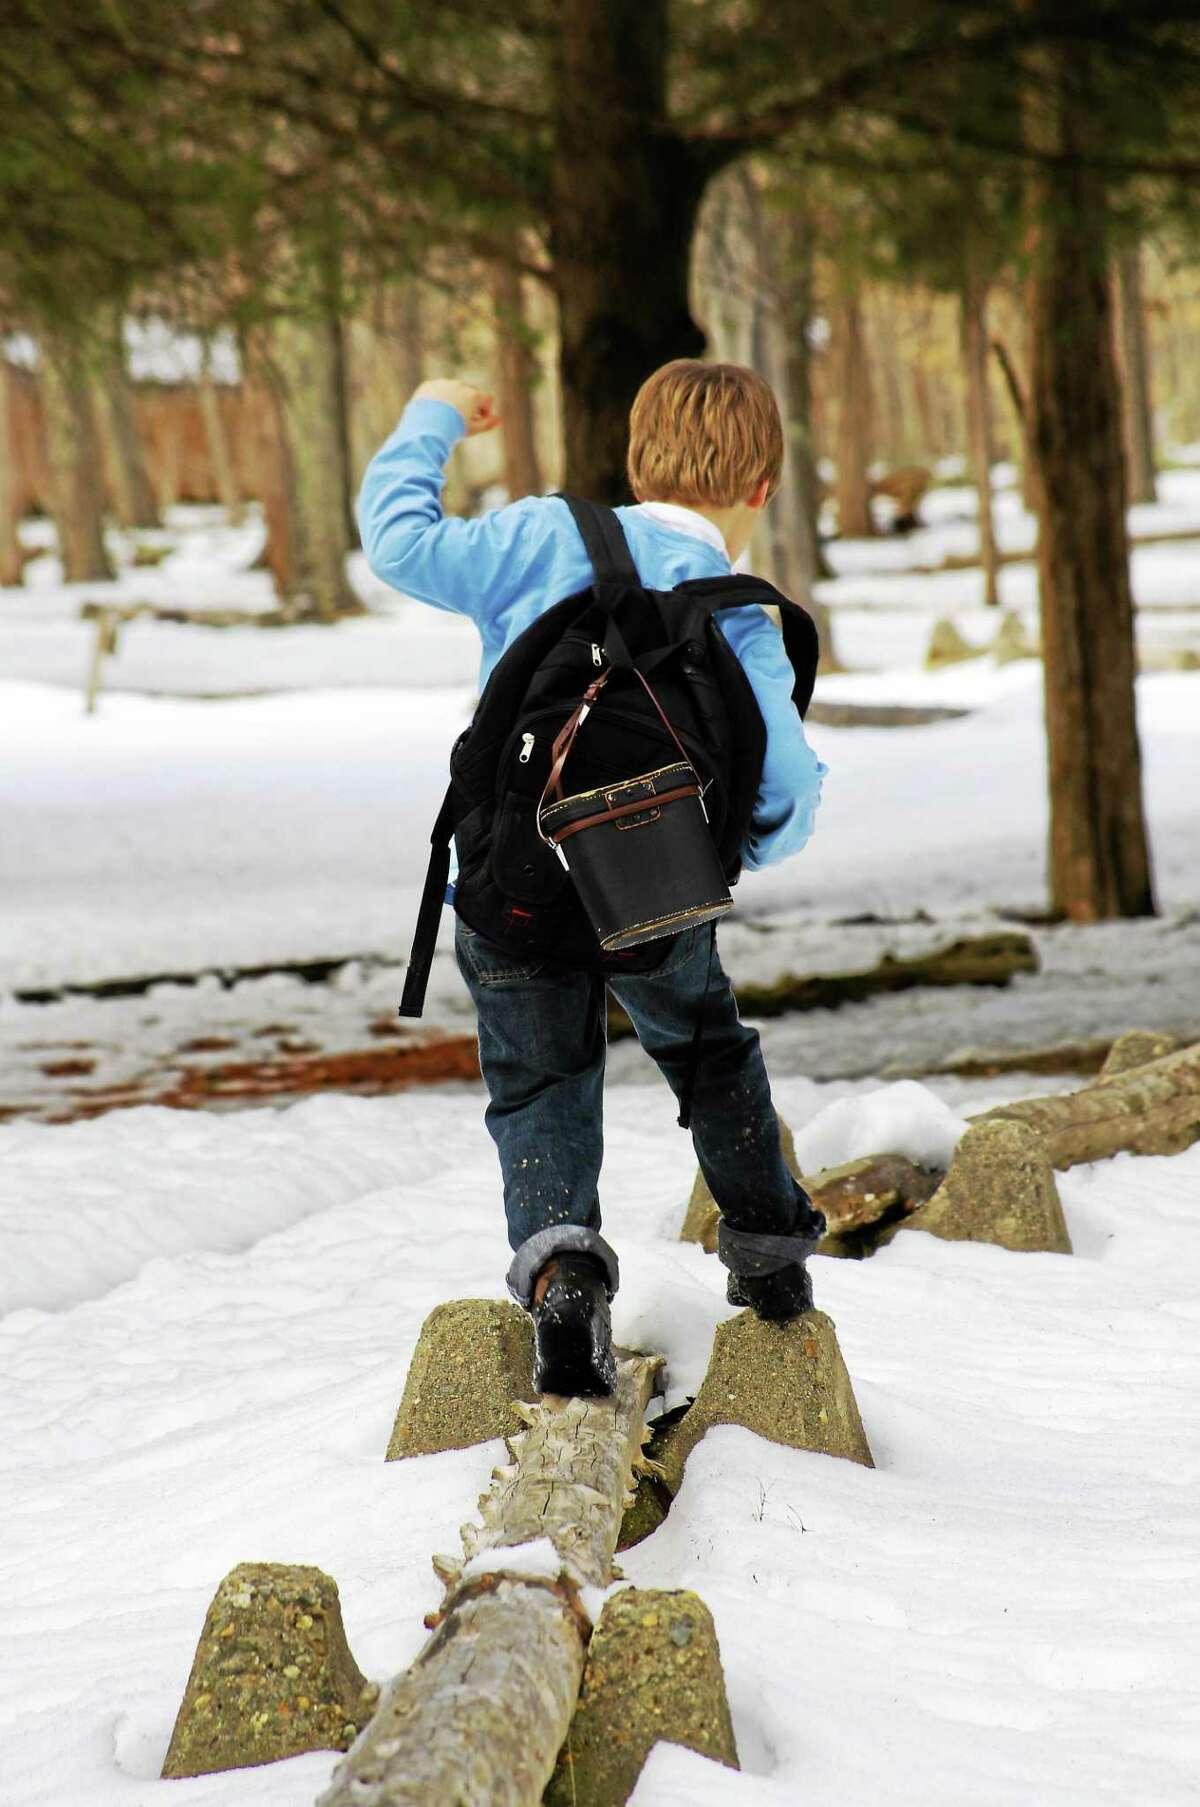 Deer Lake in Killingworth offers winter camping and cold weather survival skills.